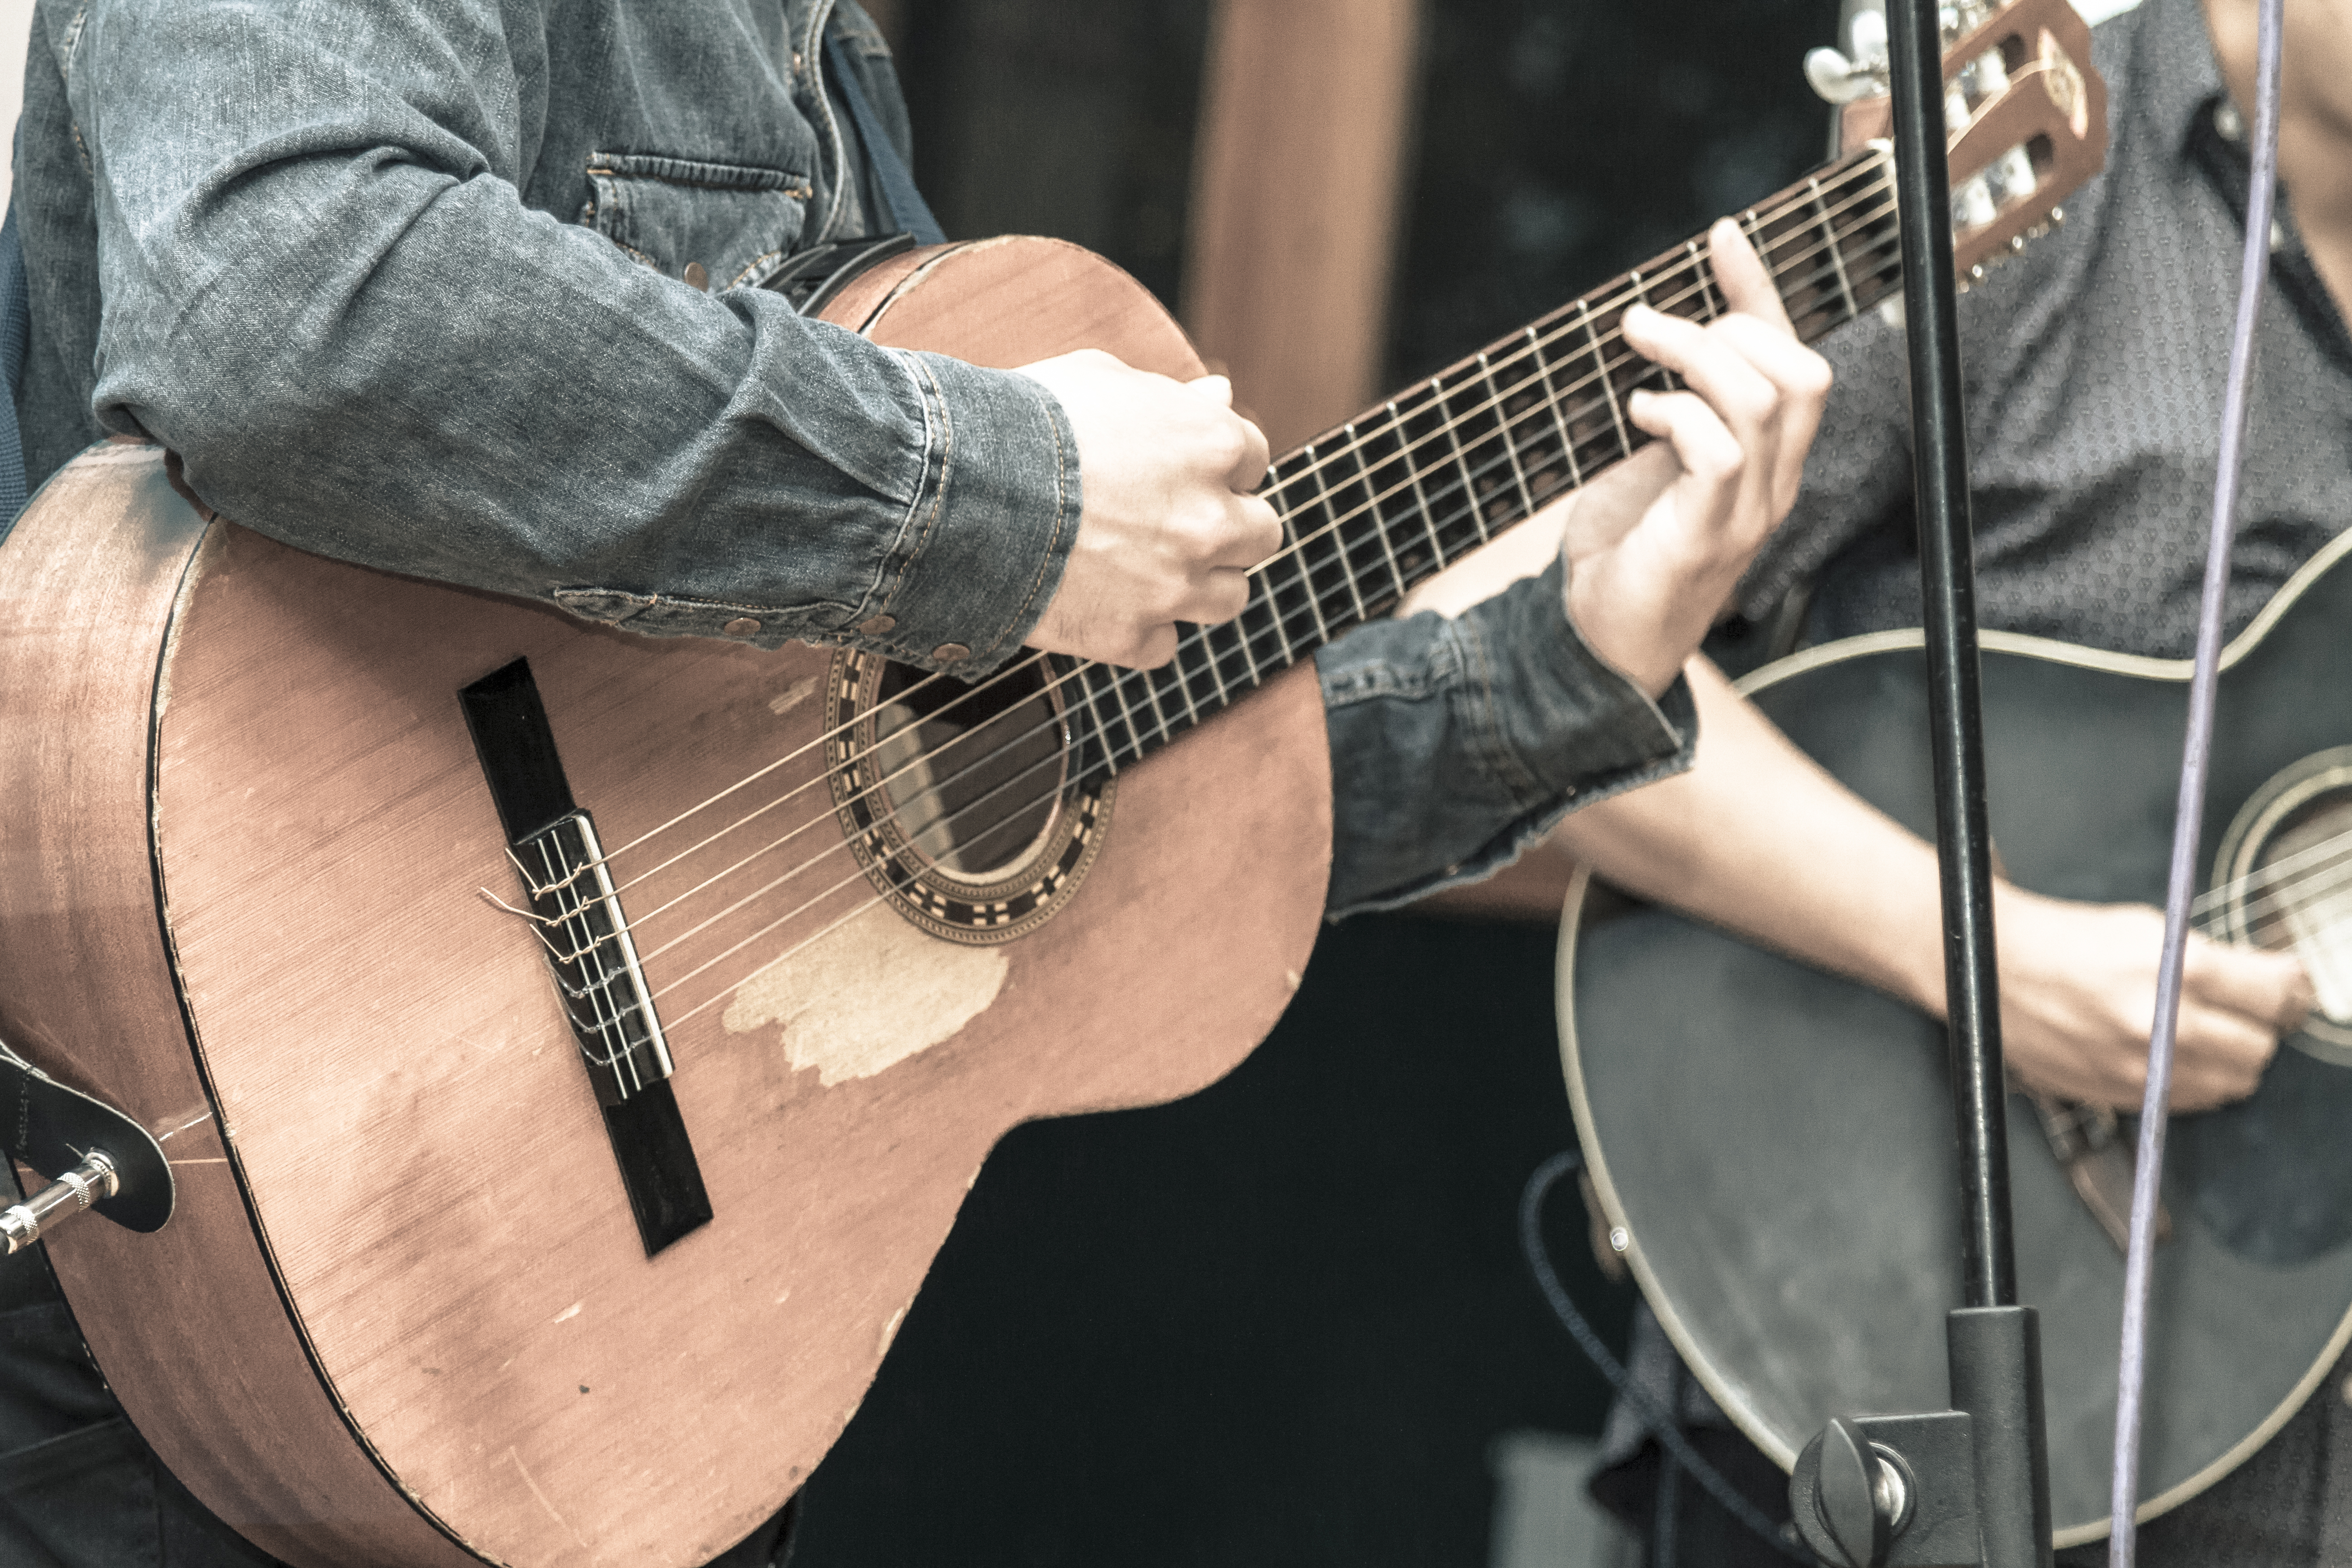 Live Acoustic Music (Daily)